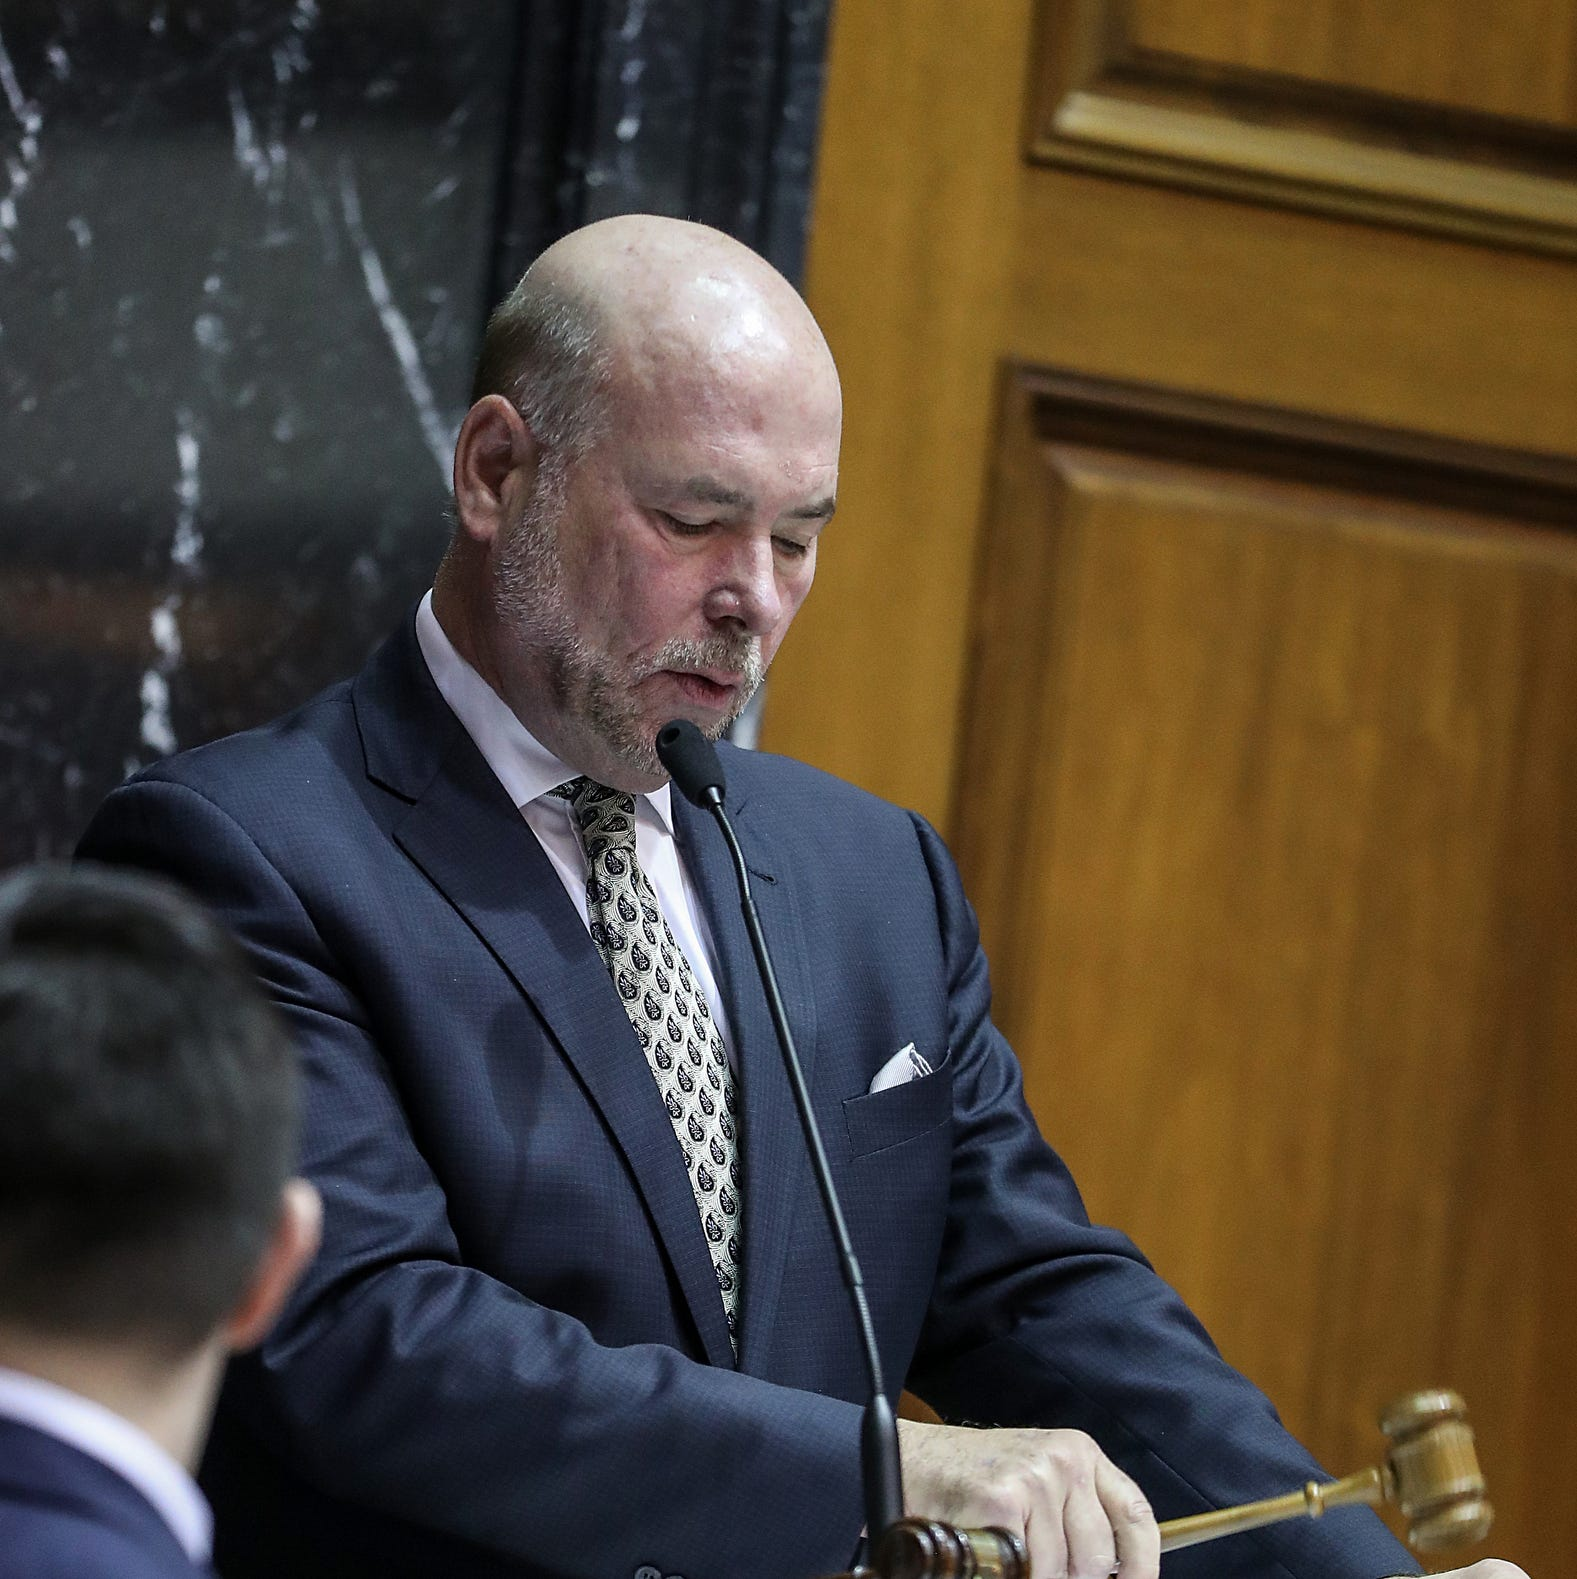 Speaker of the House Brian Bosma taps the gavel on the starting day of legislative session at the Indiana Statehouse, Indianapolis, Thursday, Jan. 3, 2019.